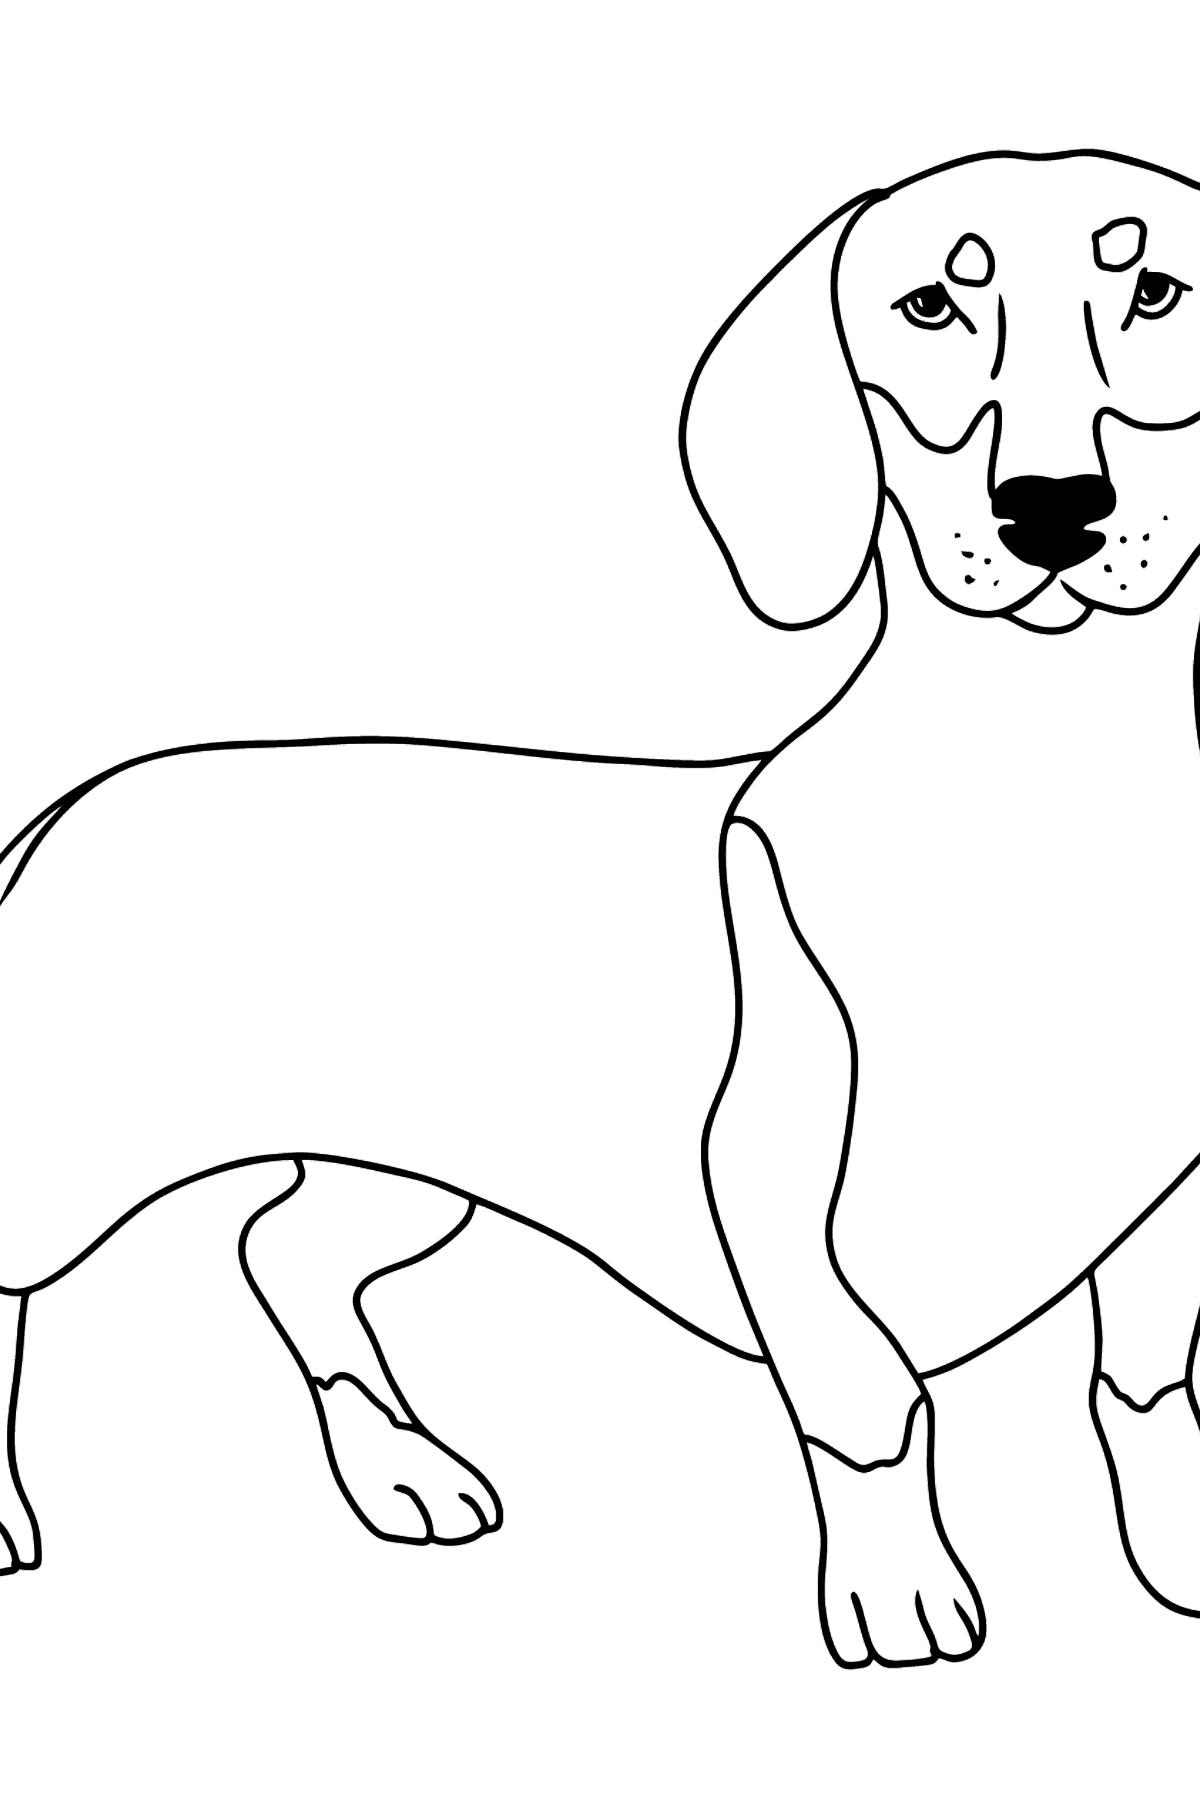 Dachshund coloring page - Coloring Pages for Kids